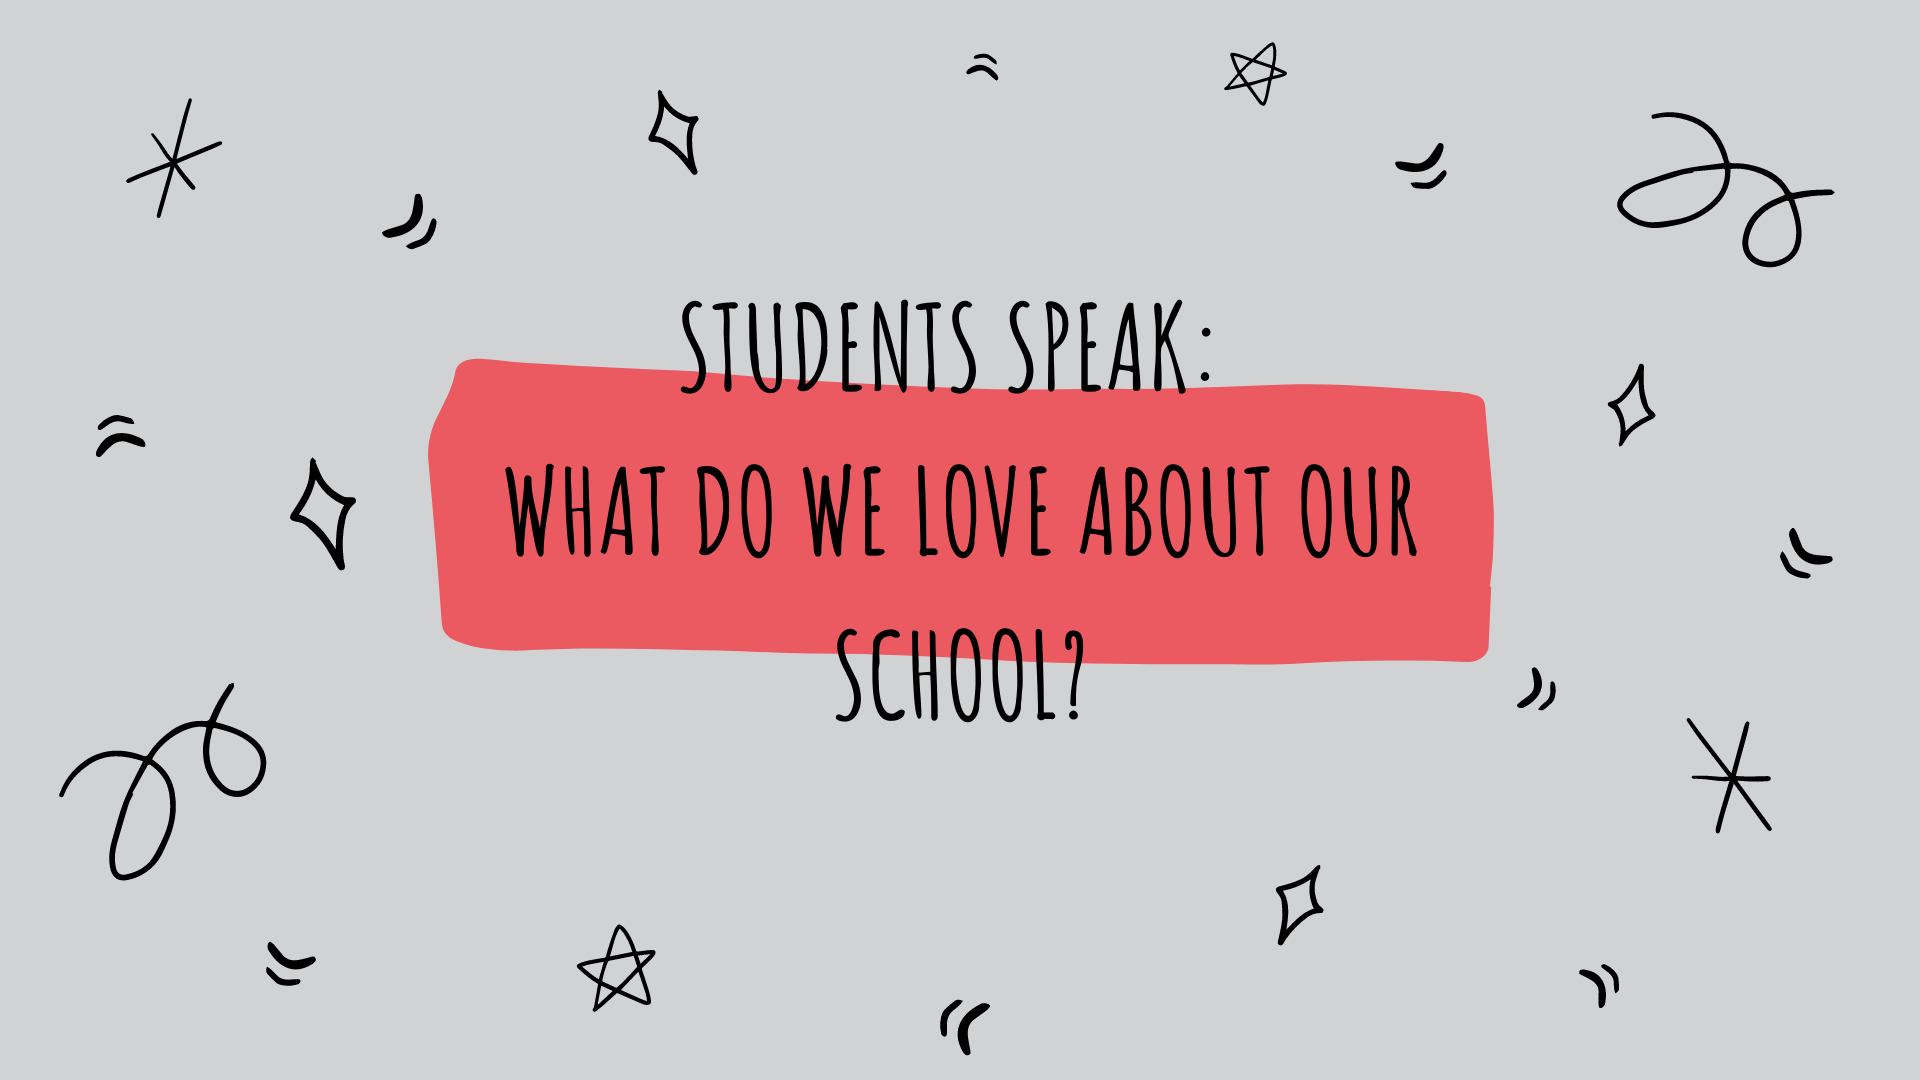 Students Speak:  What do we love about our school?